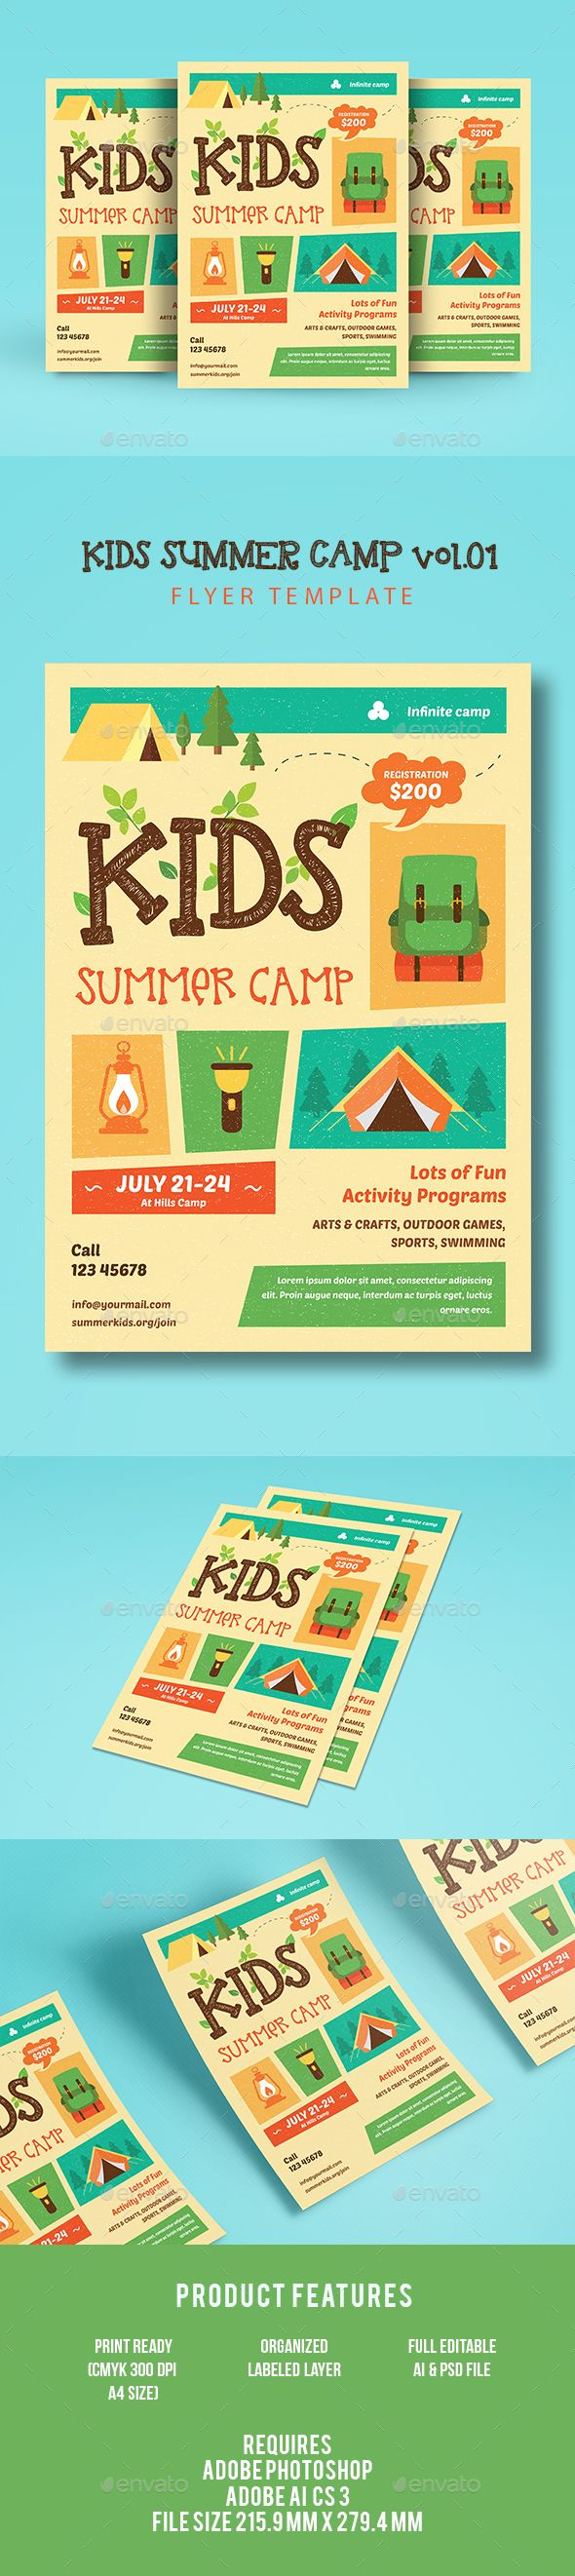 Kids Summer Camp Flyer Design Template PSD, AI Illustrator. Download here: http://graphicriver.net/item/kids-summer-camp/16382227?ref=ksioks